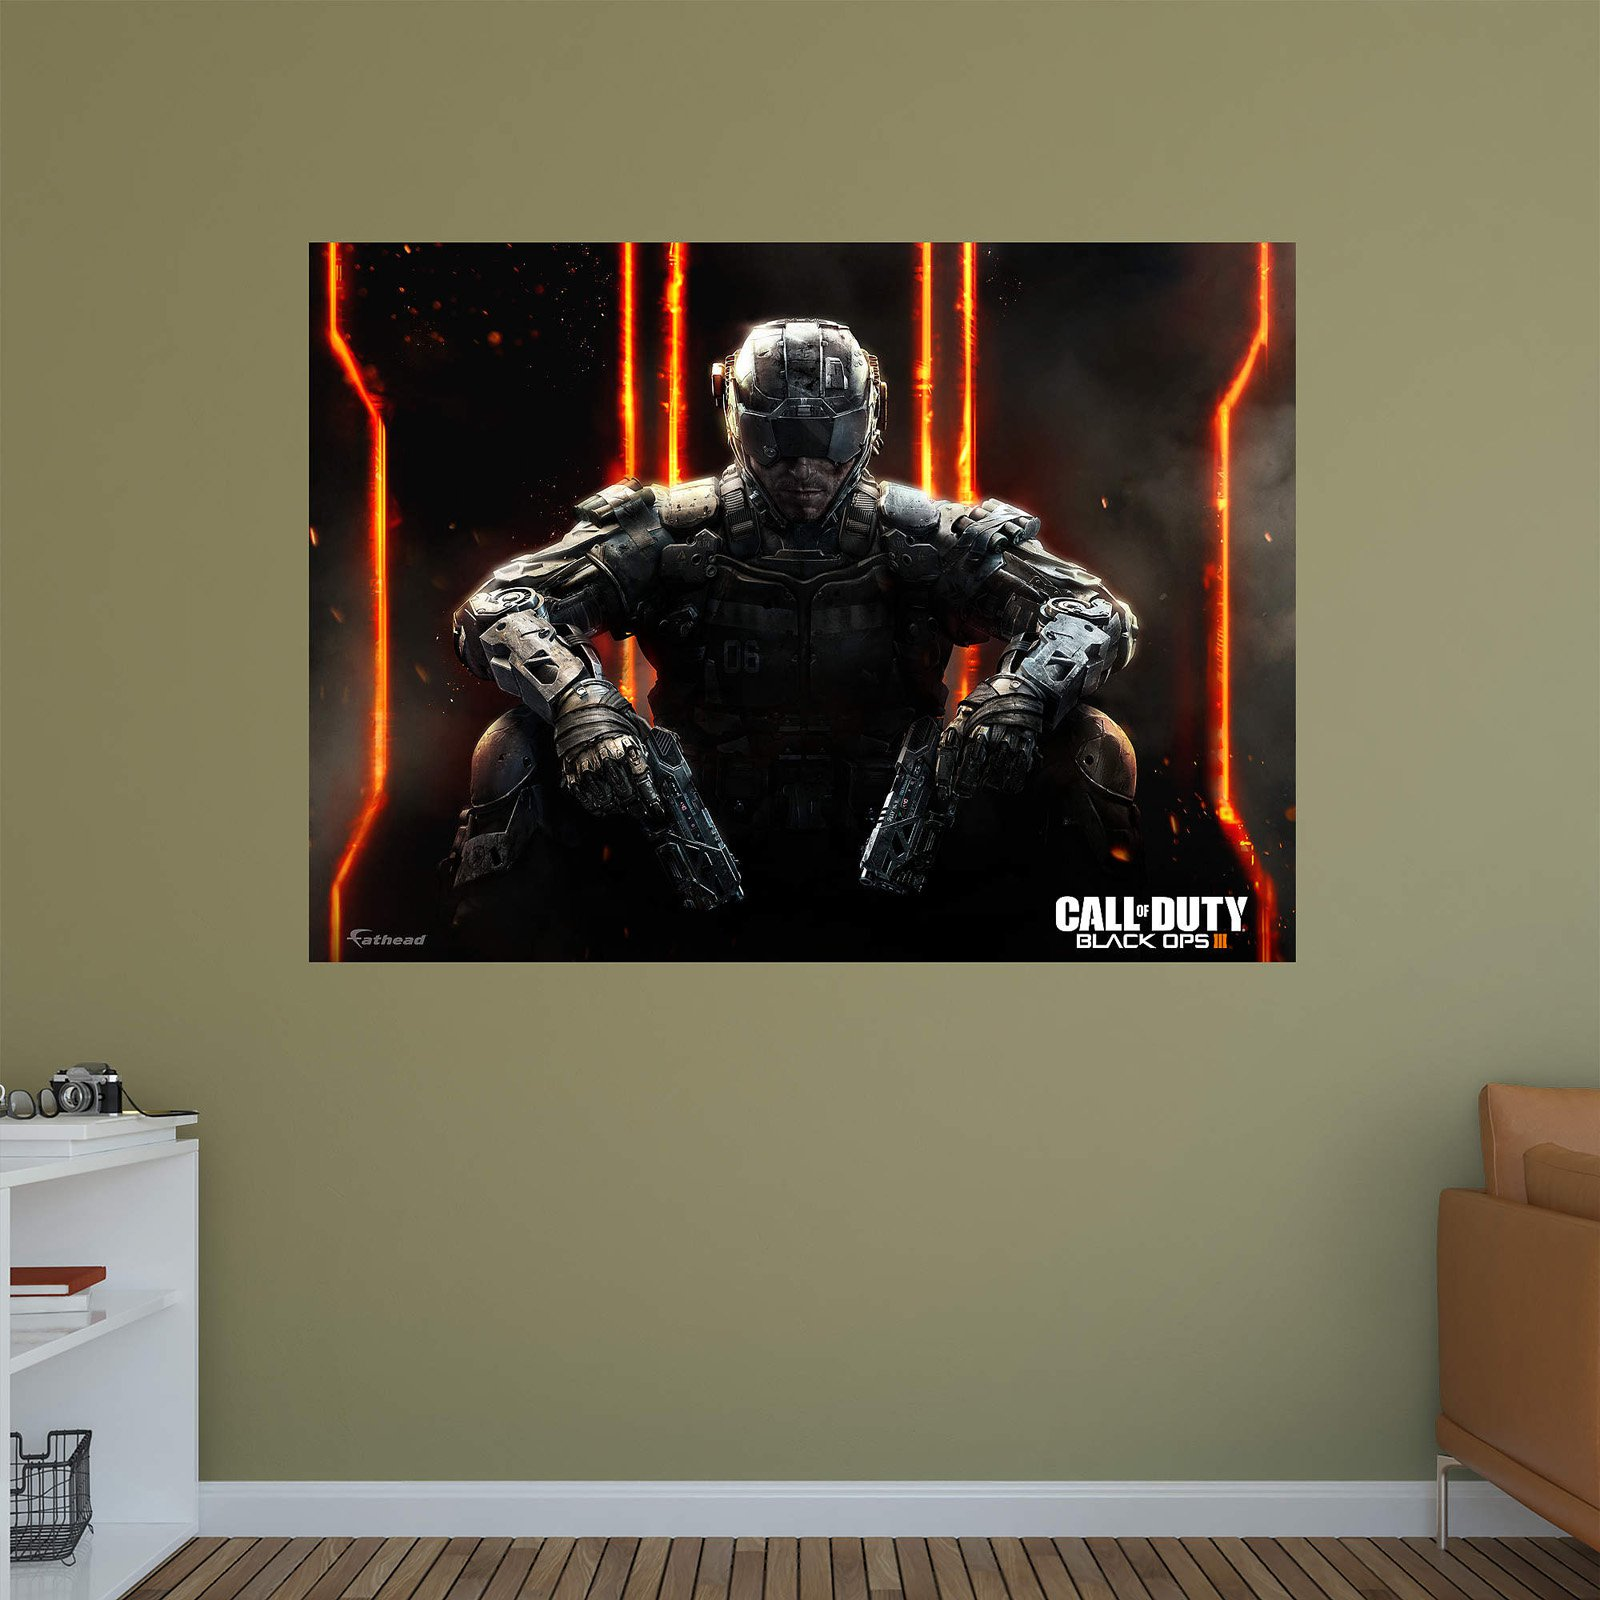 Fathead Call Of Duty Black Ops 3 Wall Mural